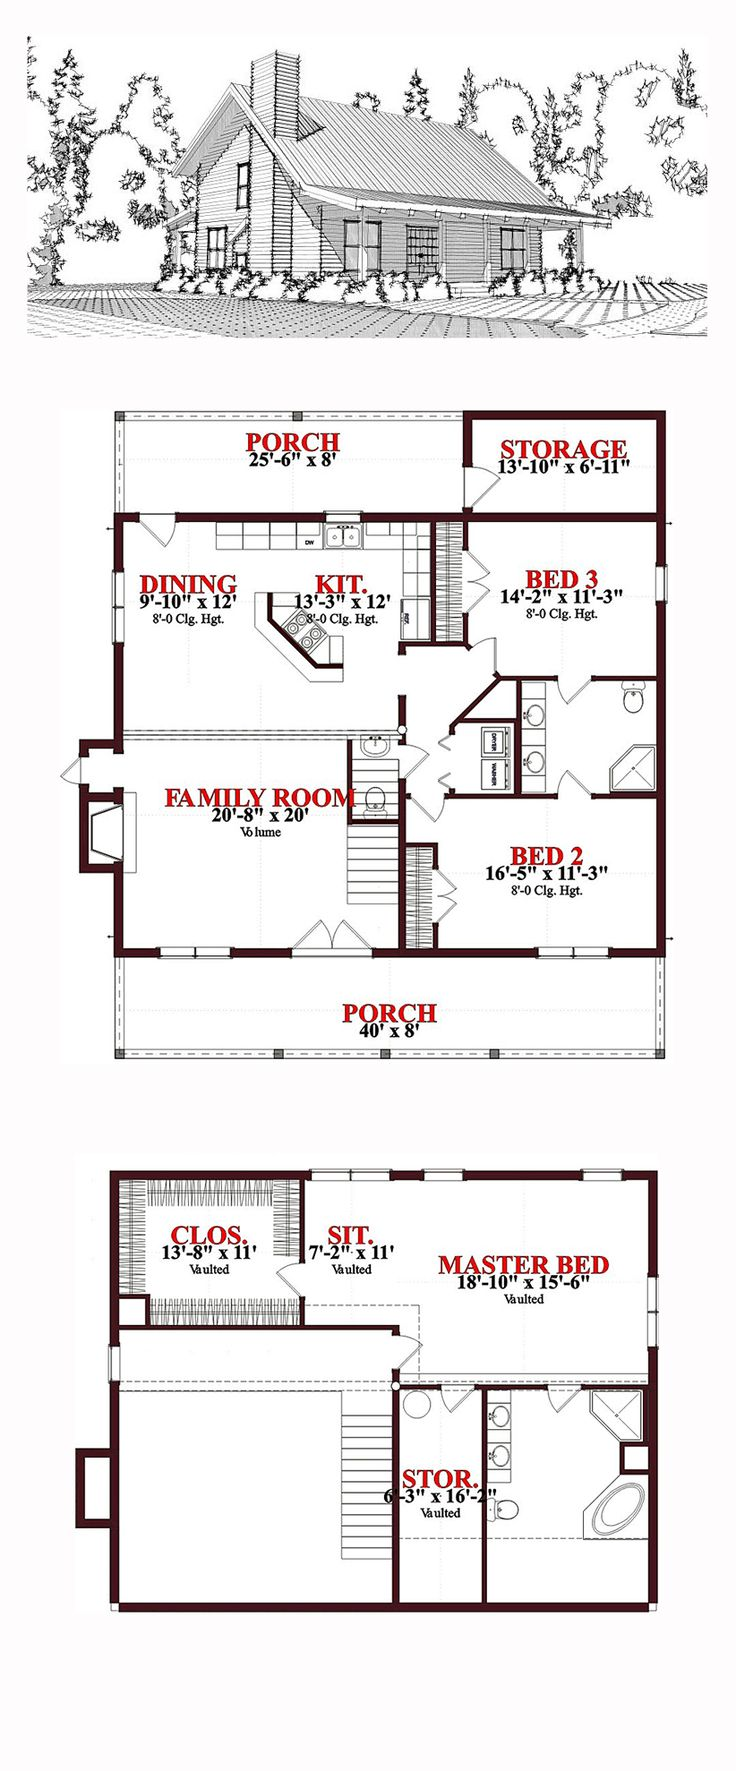 Saltbox Design House Plans House Plans